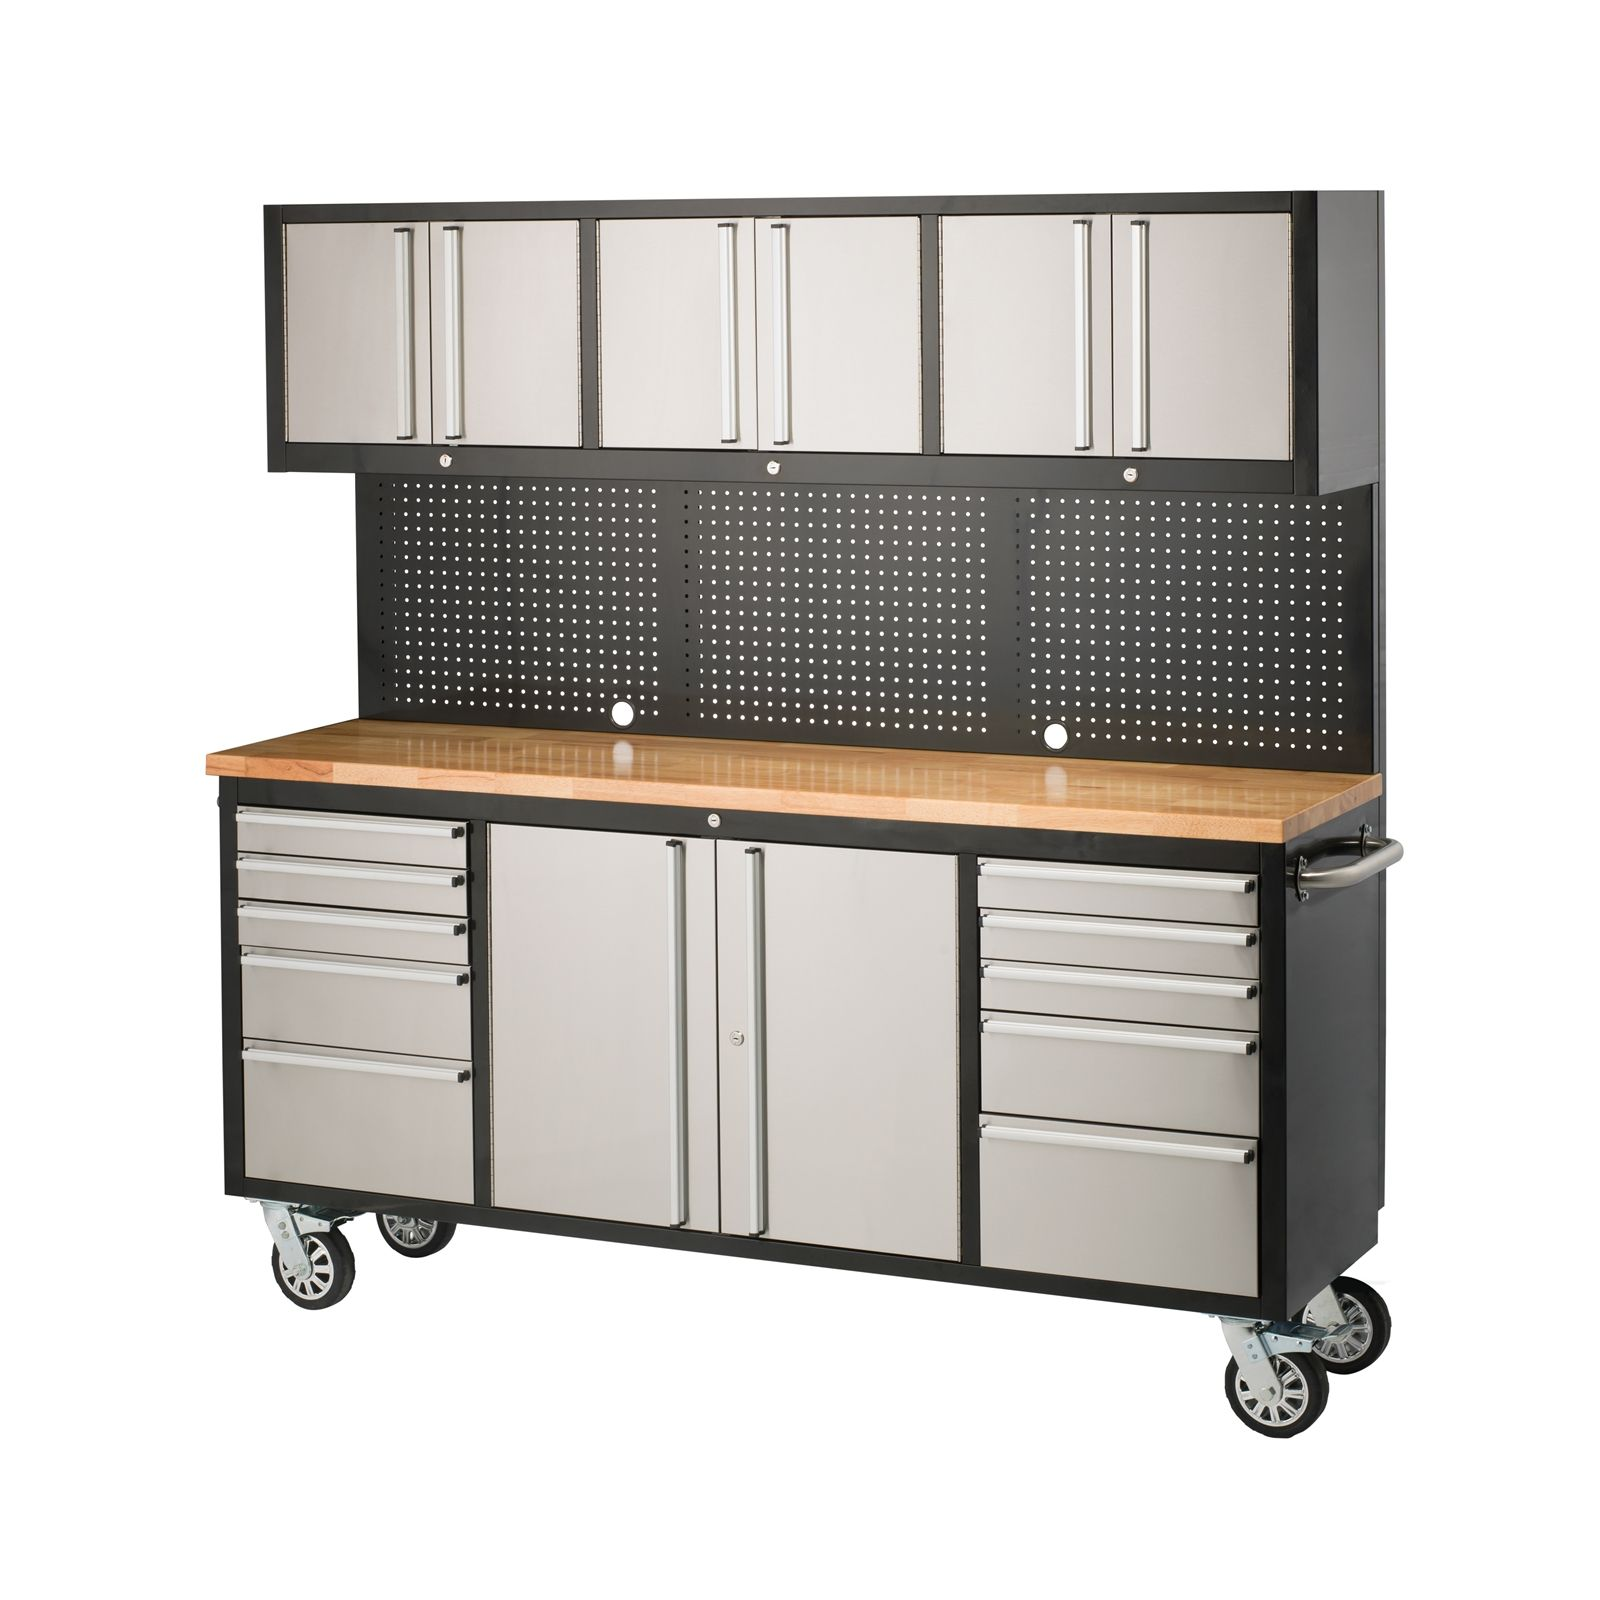 Sandleford 1835 x 523 x 1870mm Ultimate Workstation Trolley | Stuff ...